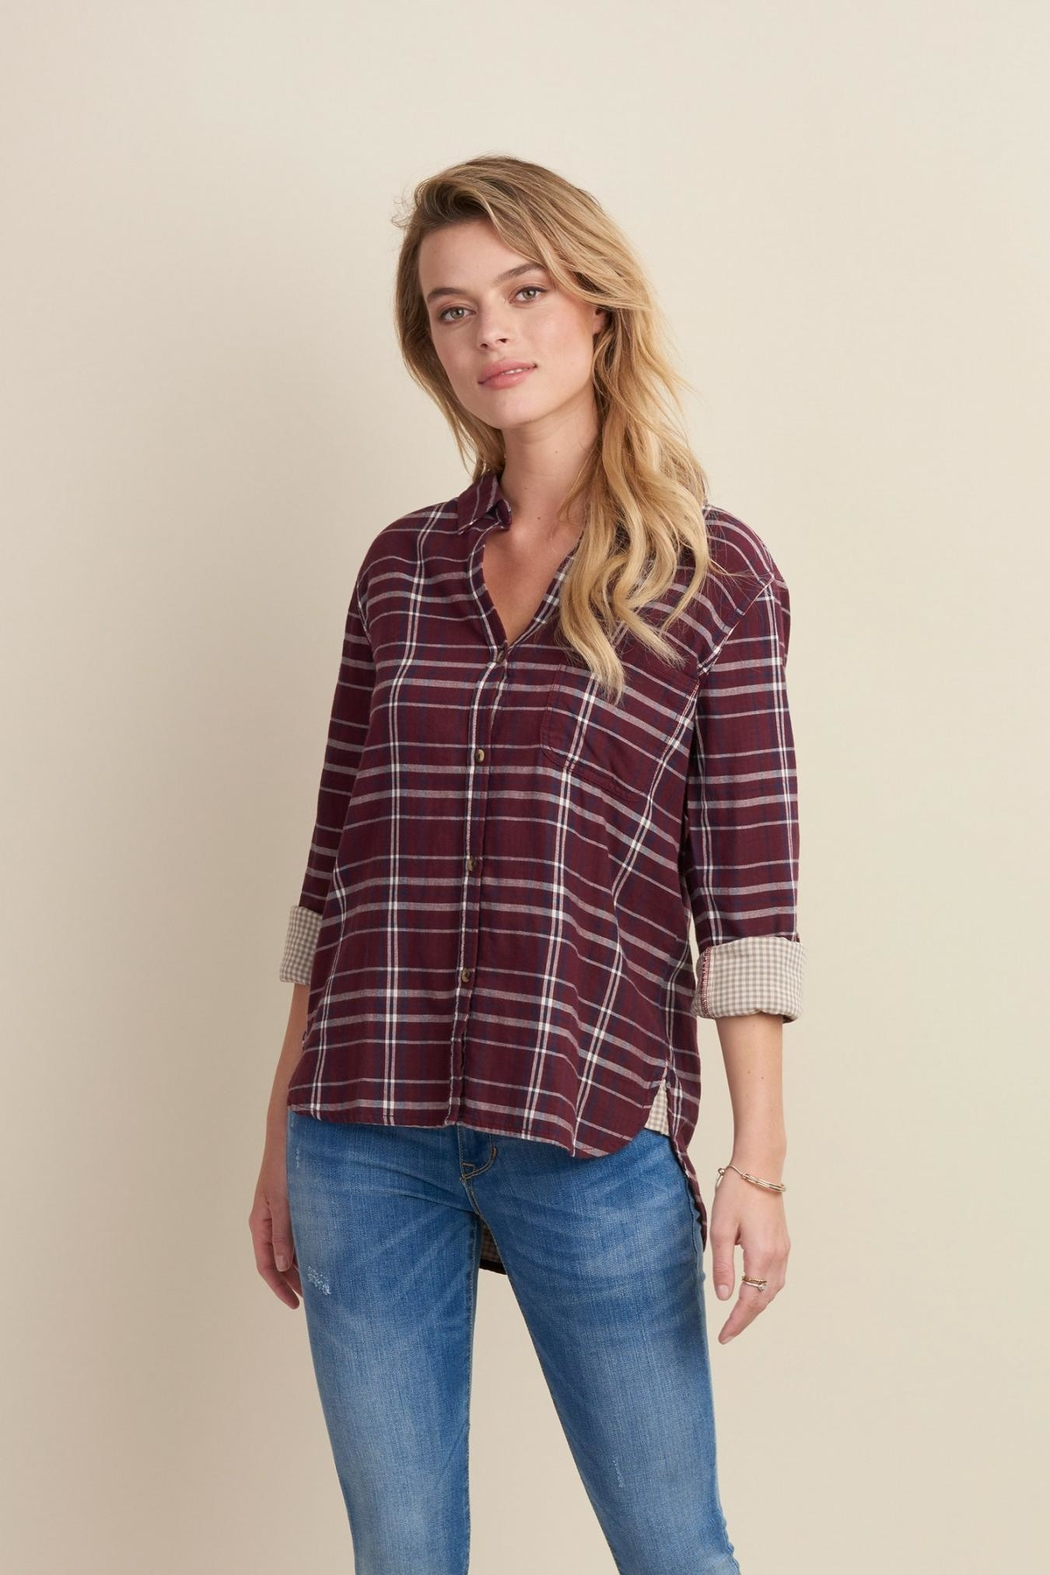 Hatley Sadie Burgundy-Plaid Blouse - Front Cropped Image